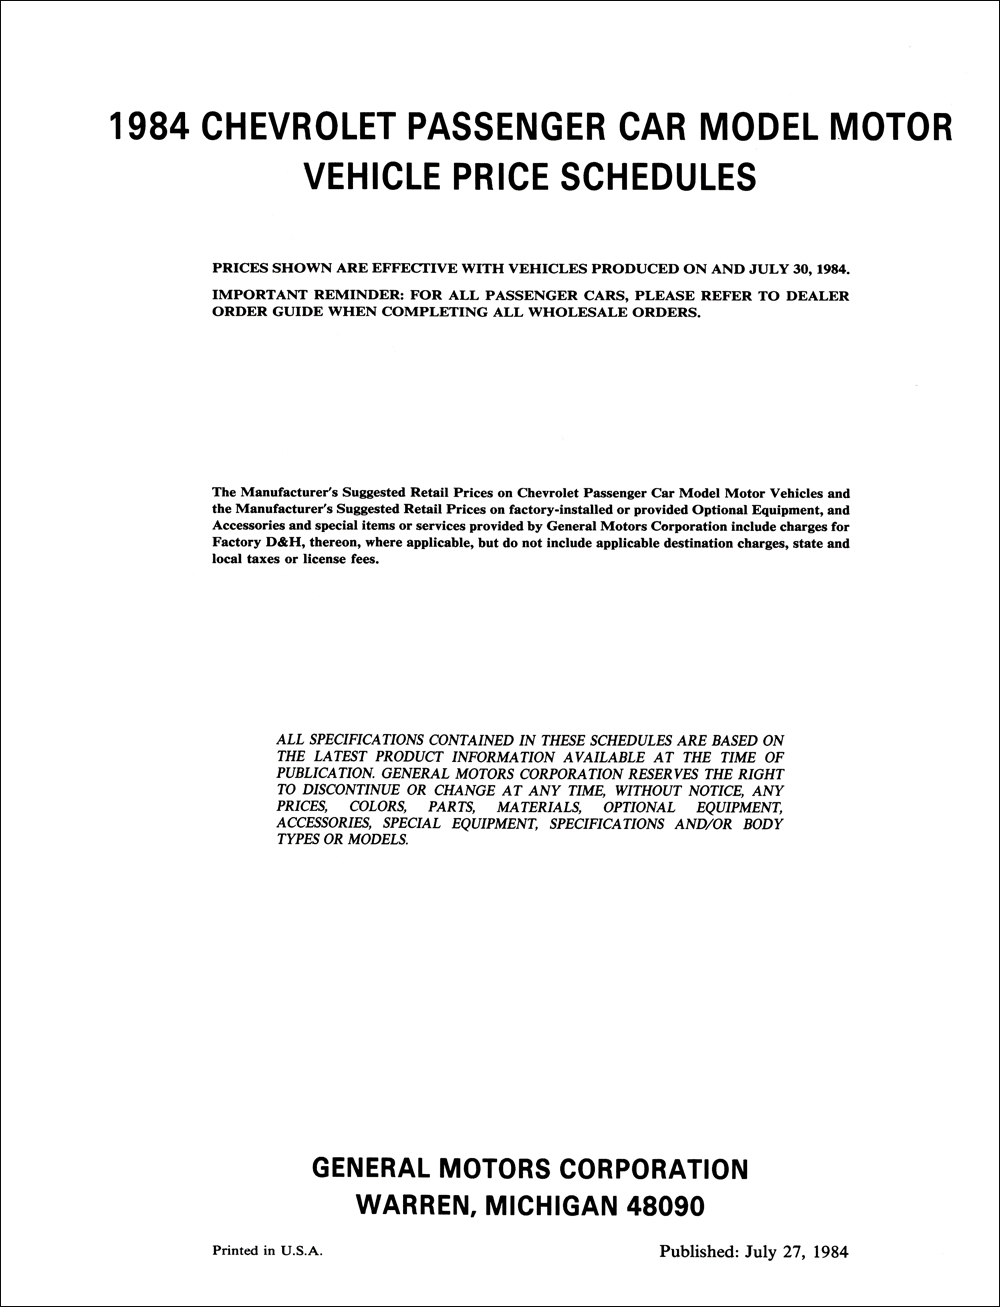 1984 Chevrolet Price Schedule Dealer Album Original